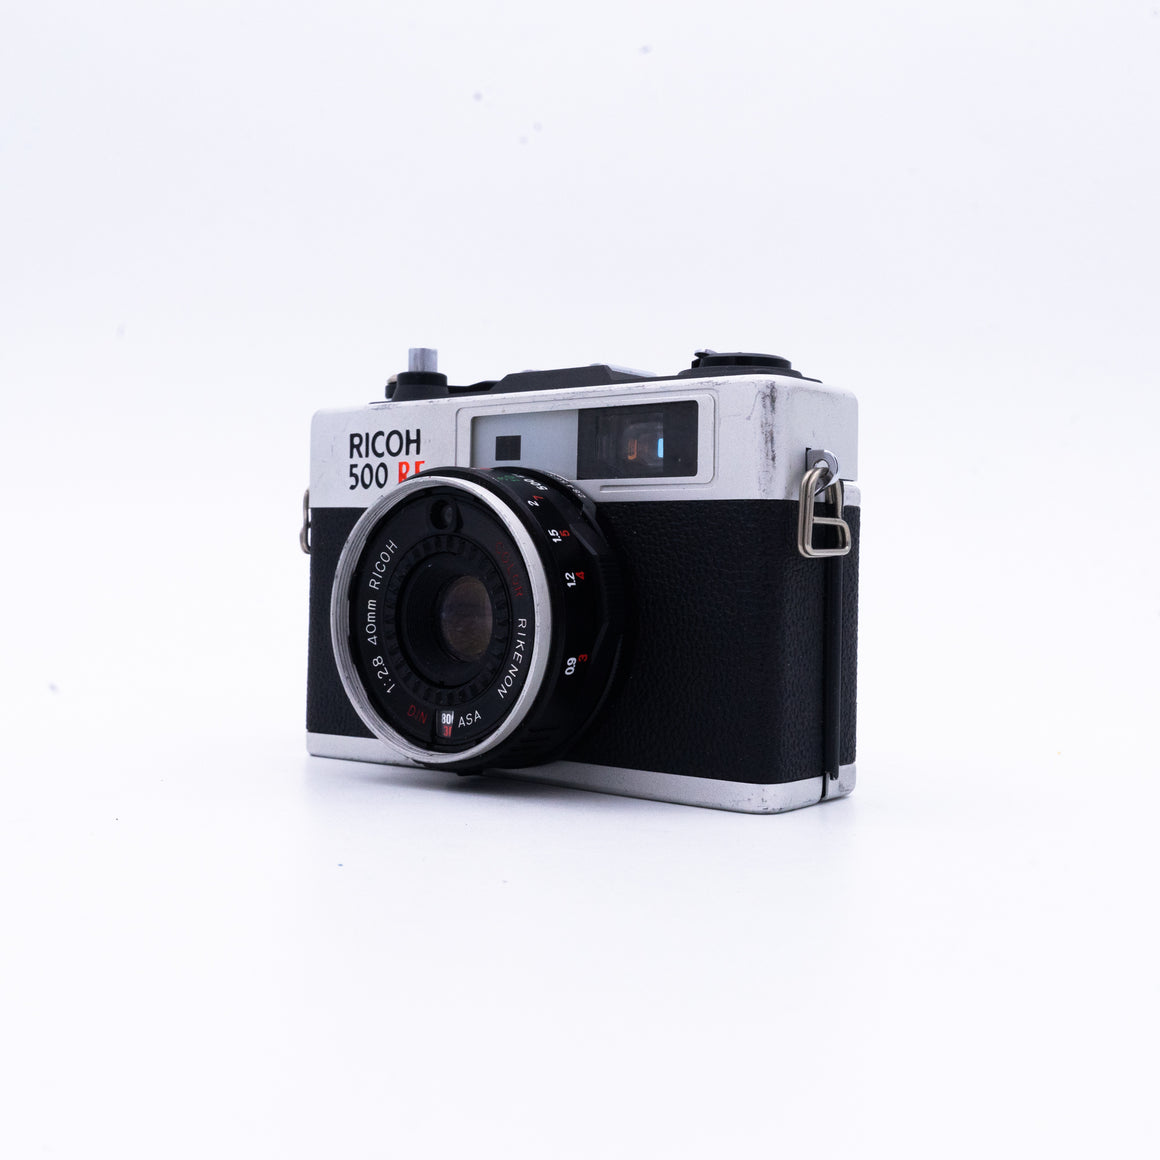 Ricoh 500 RF Rangefinder Camera with 40mm f/2.8 Lens